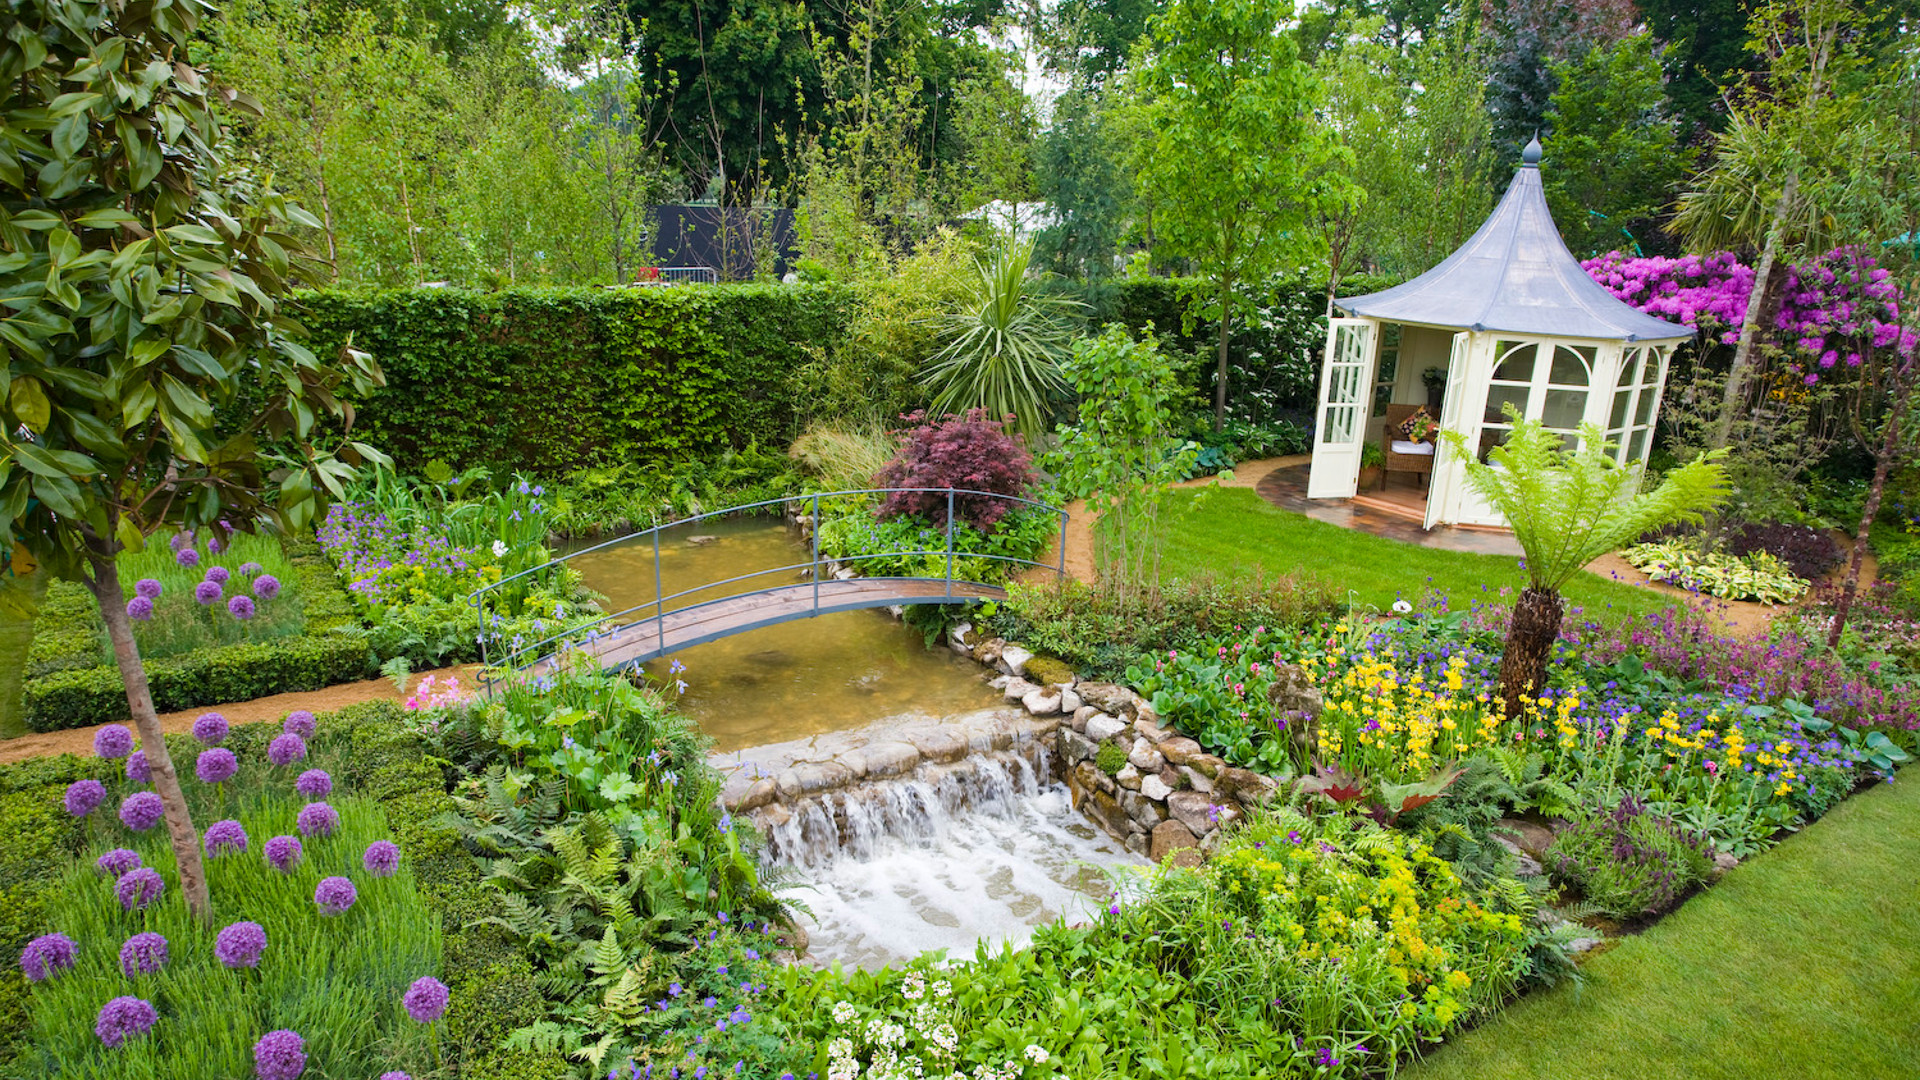 Tim austen garden designs designer gardens for A garden design